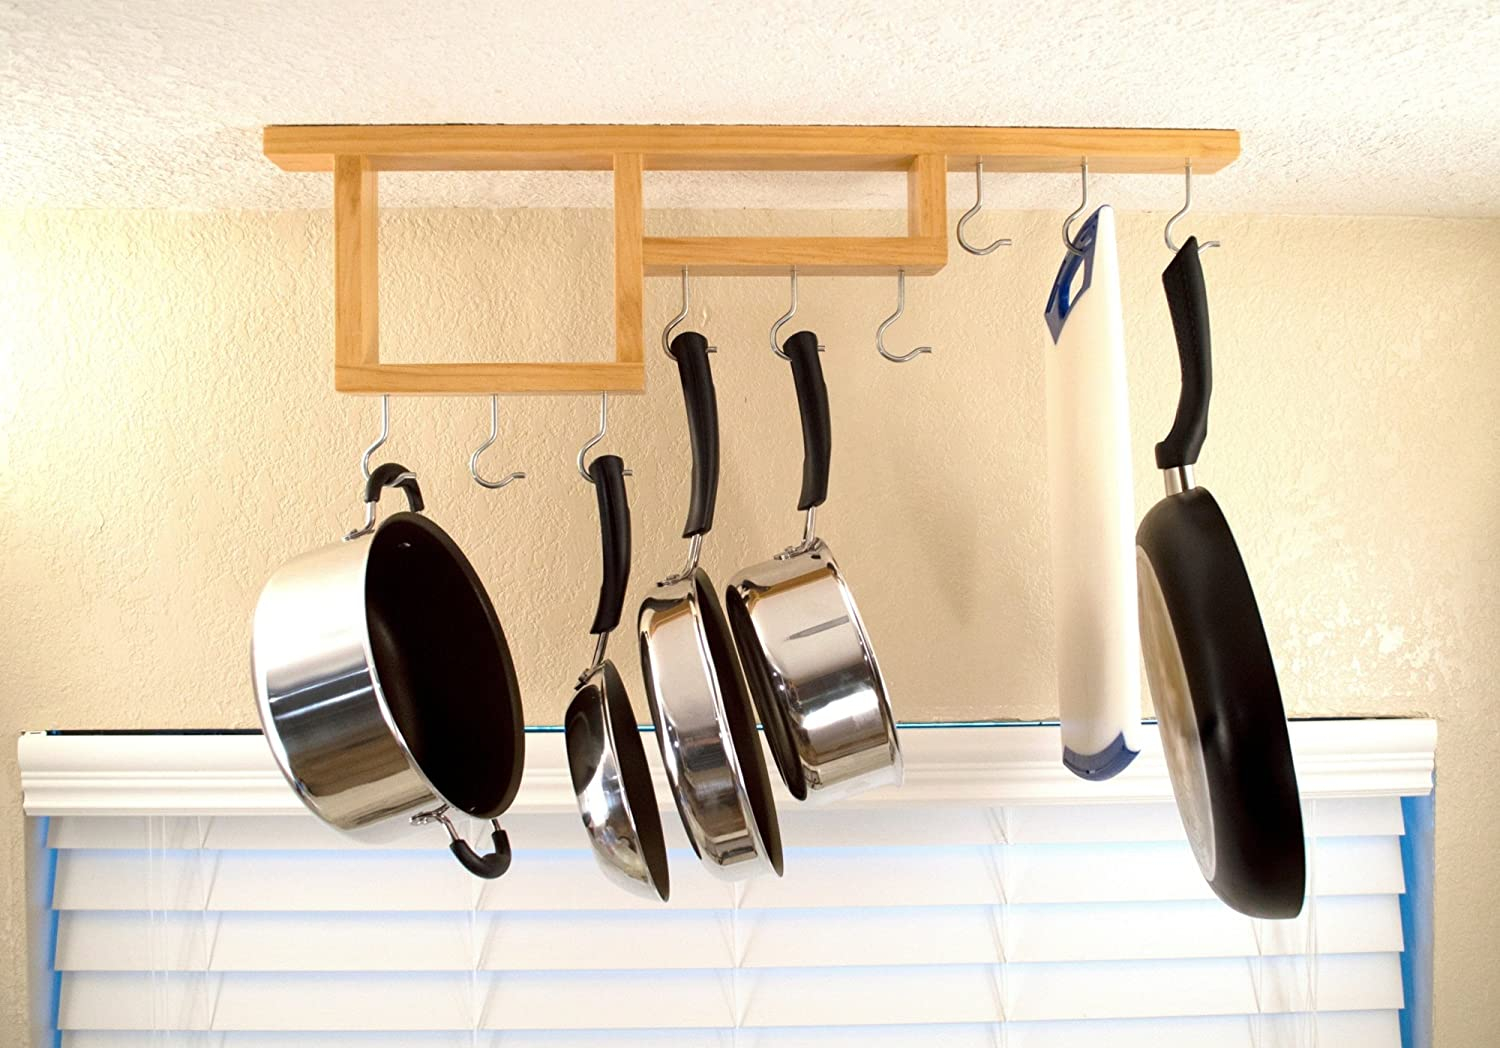 Amazon.com: Pot Rack: Easy to Reach Ceiling Mount Solid-Wood Pan ...